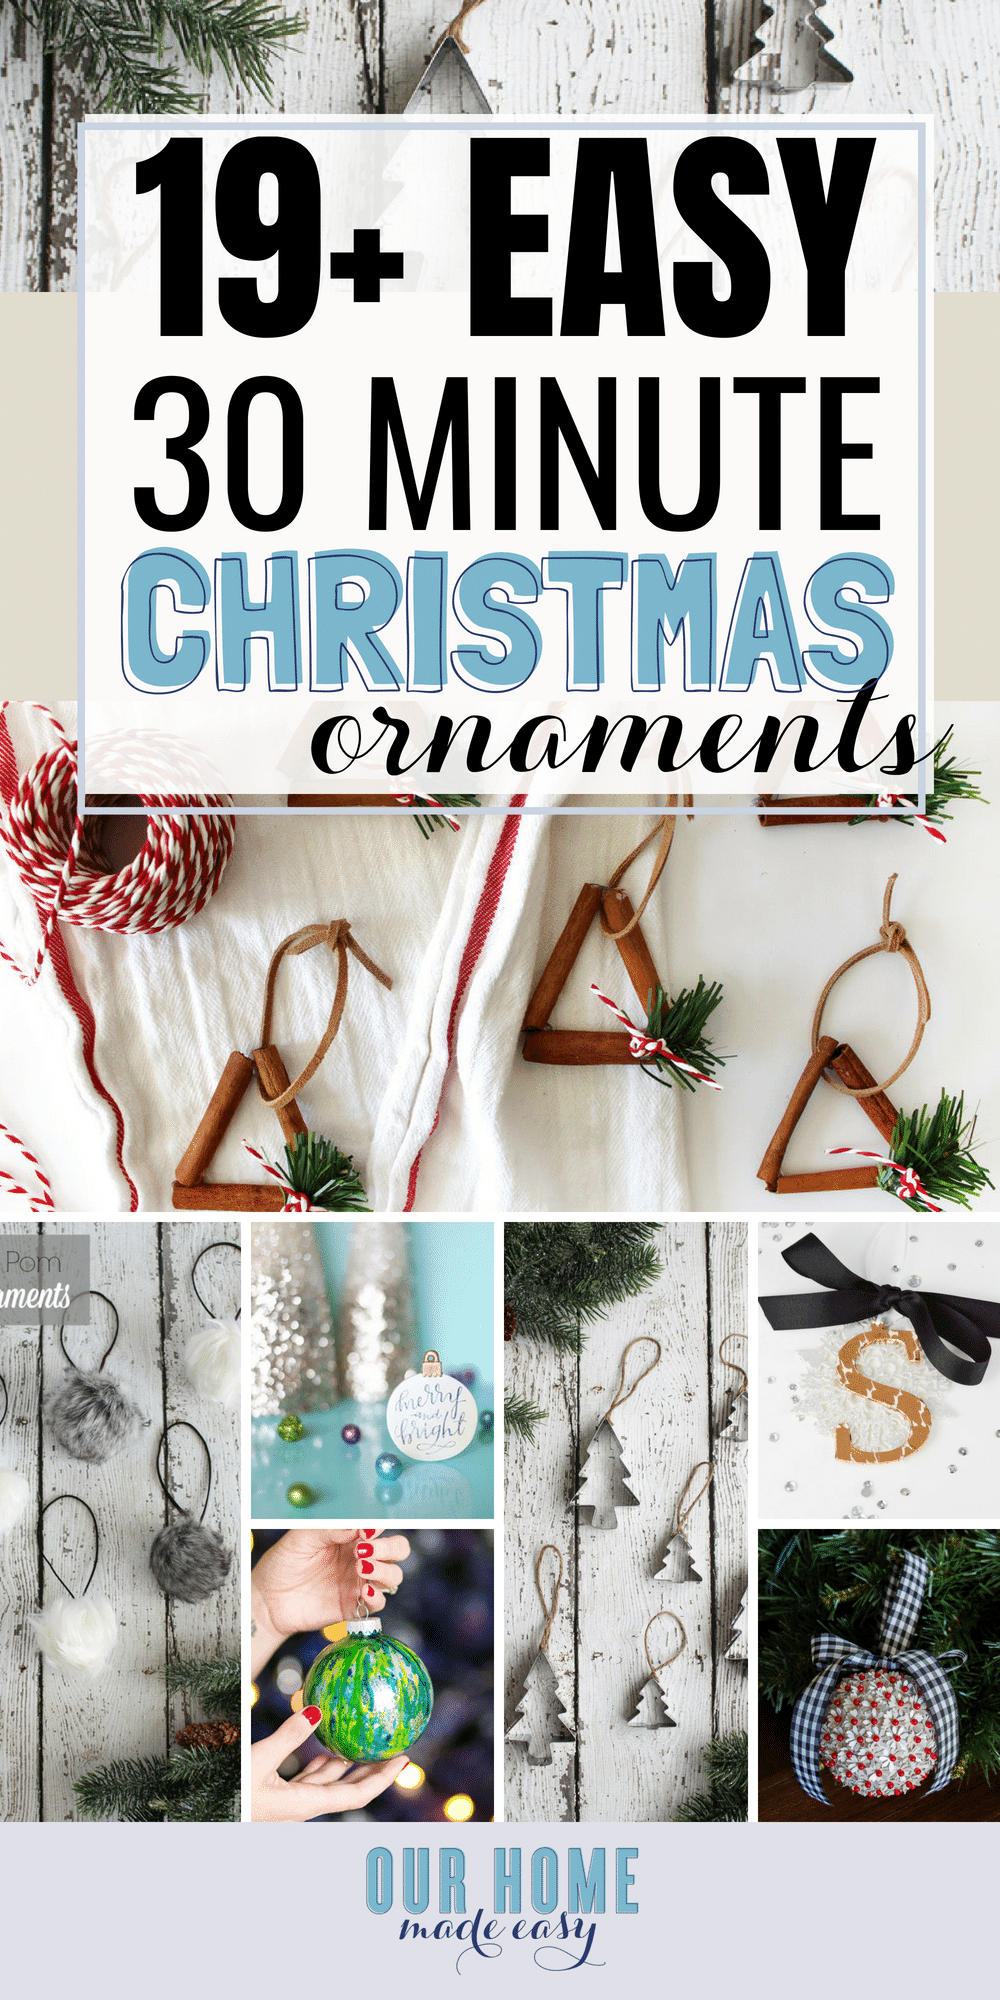 Fun DIY Christmas ornaments in 30 minutes! Make them as a gift! #christmas #ornaments #christmastree #homedecor